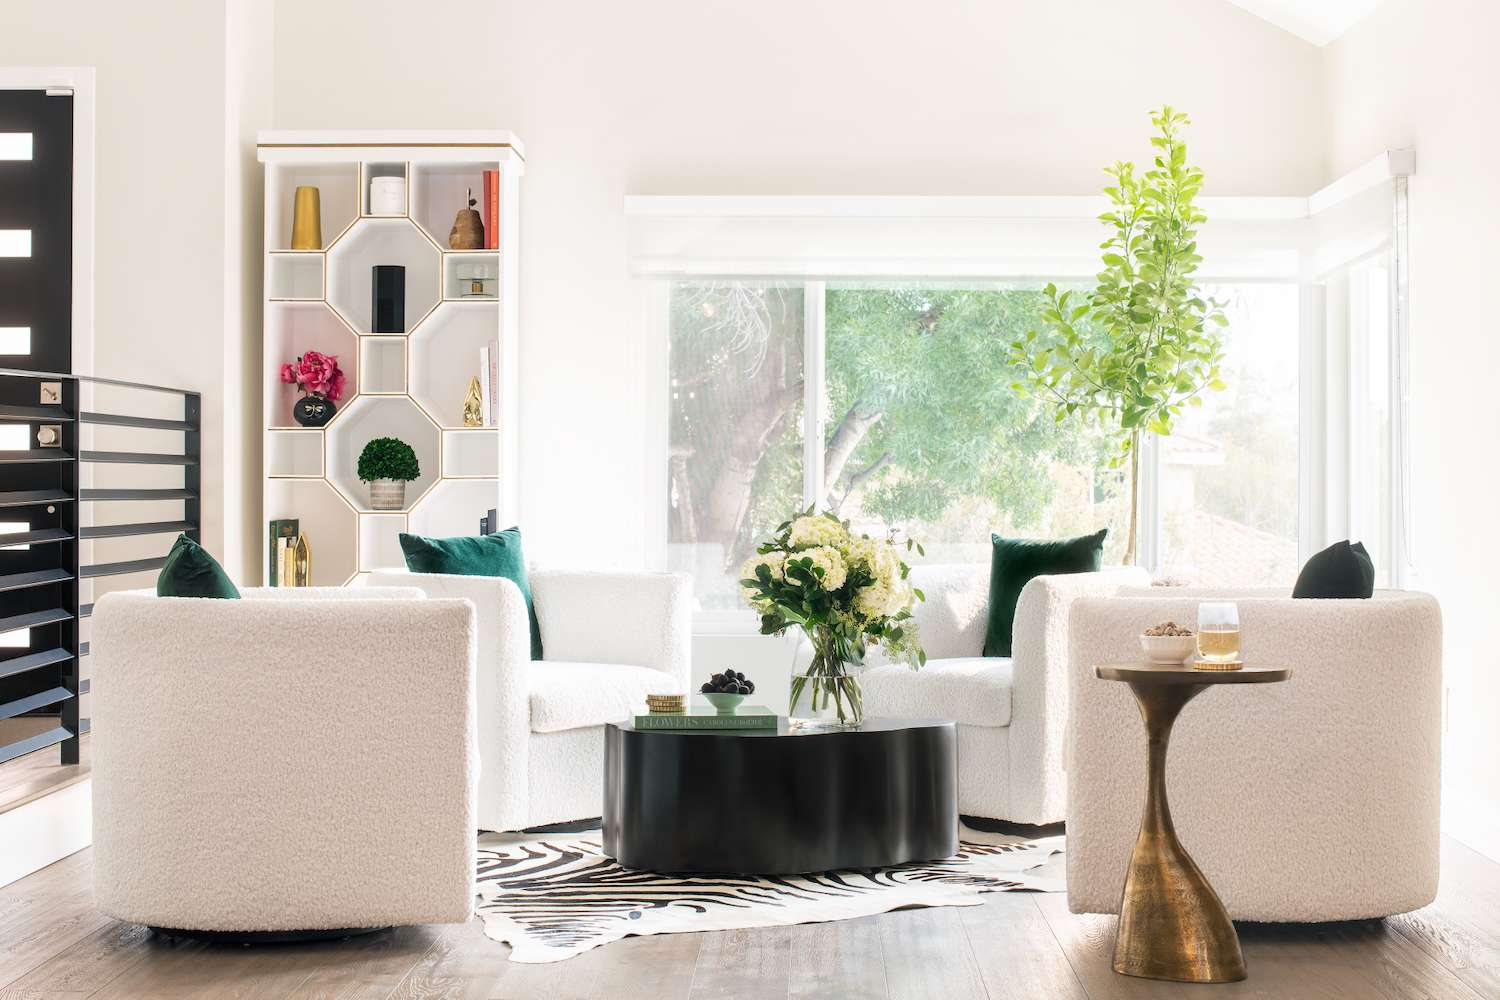 How to decorate an awkward living room